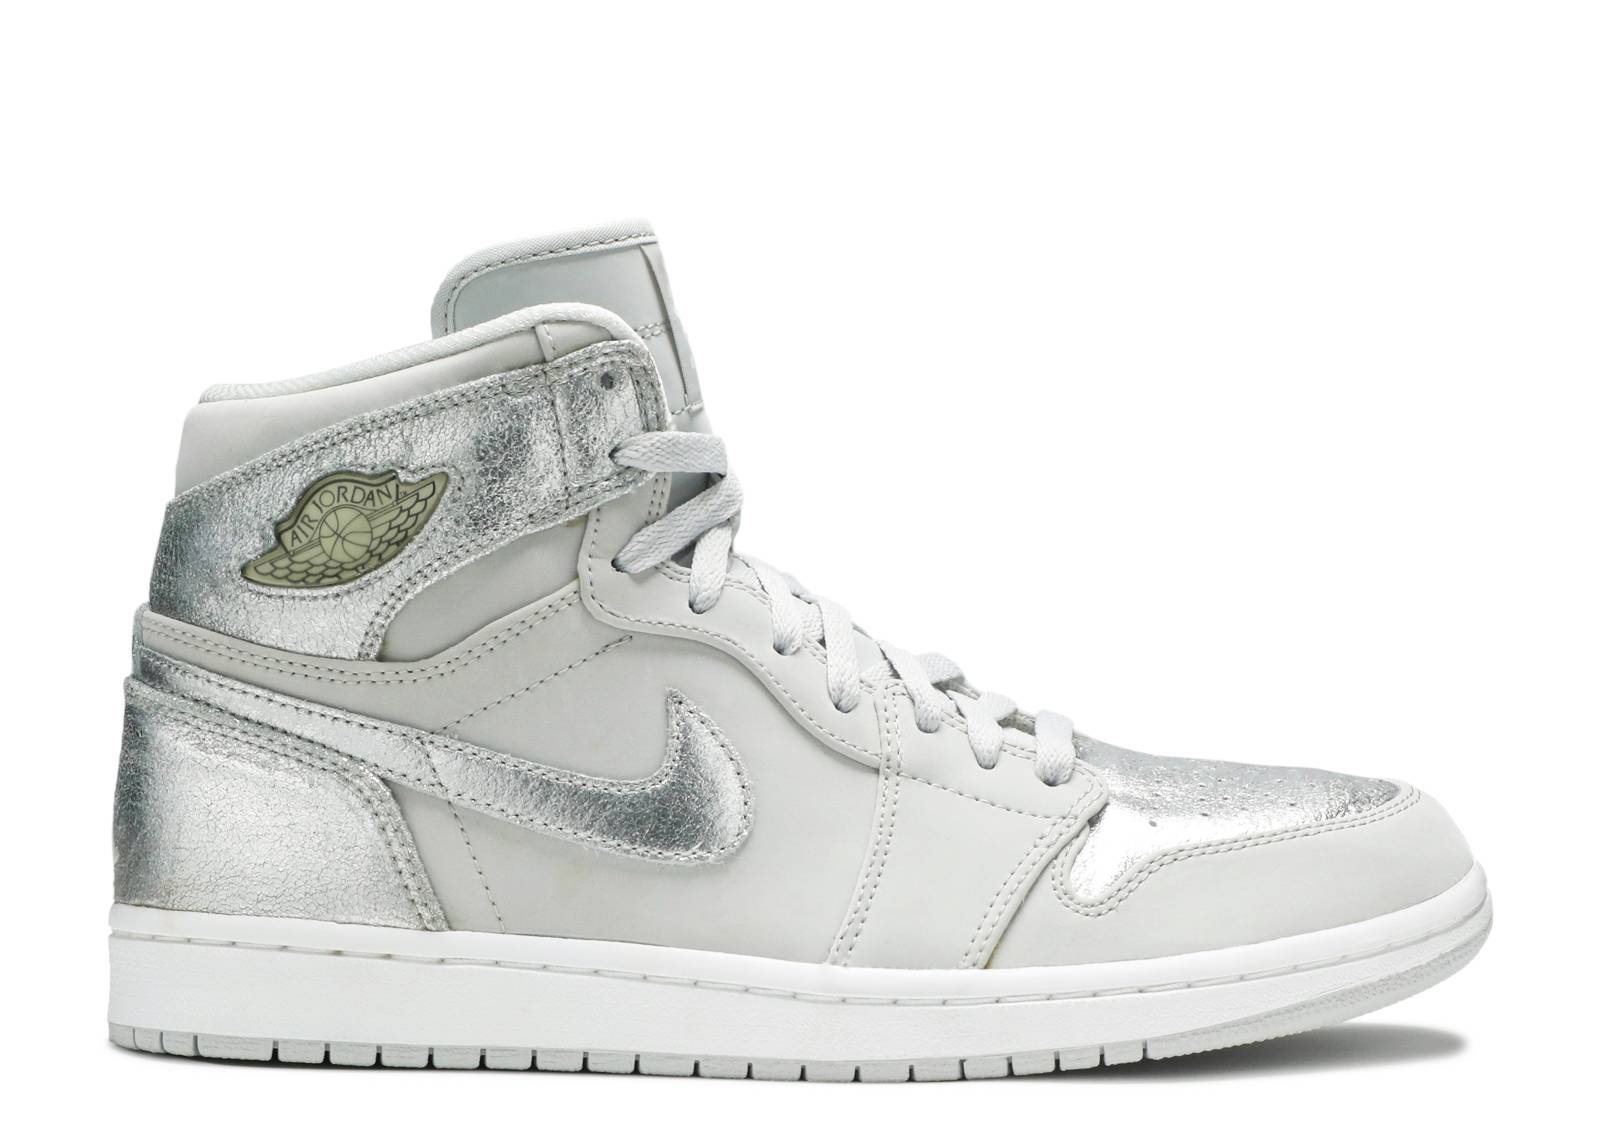 reputable site 7c731 da13e air jordan 1 retro hi silver